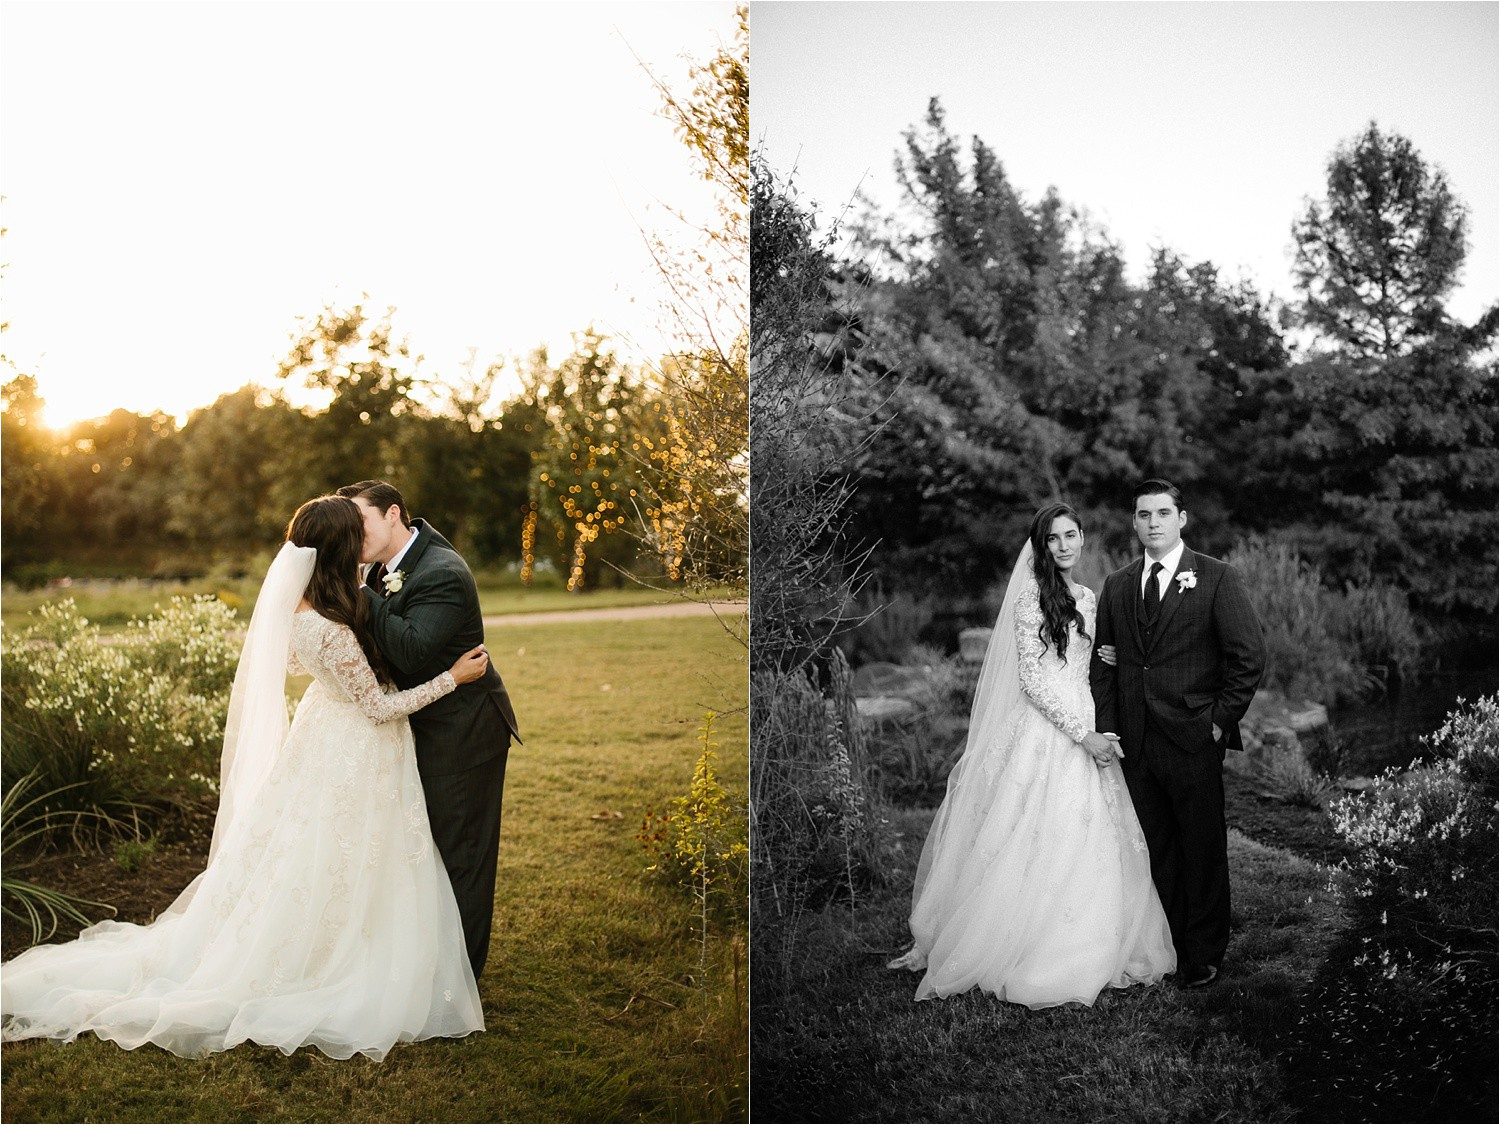 an-elegant-family-ranch-wedding-on-lake-worth-with-burgundy-apricot-and-blush-inspired-decorations-by-north-texas-wedding-photographer-rachel-meagan-photography-_-42